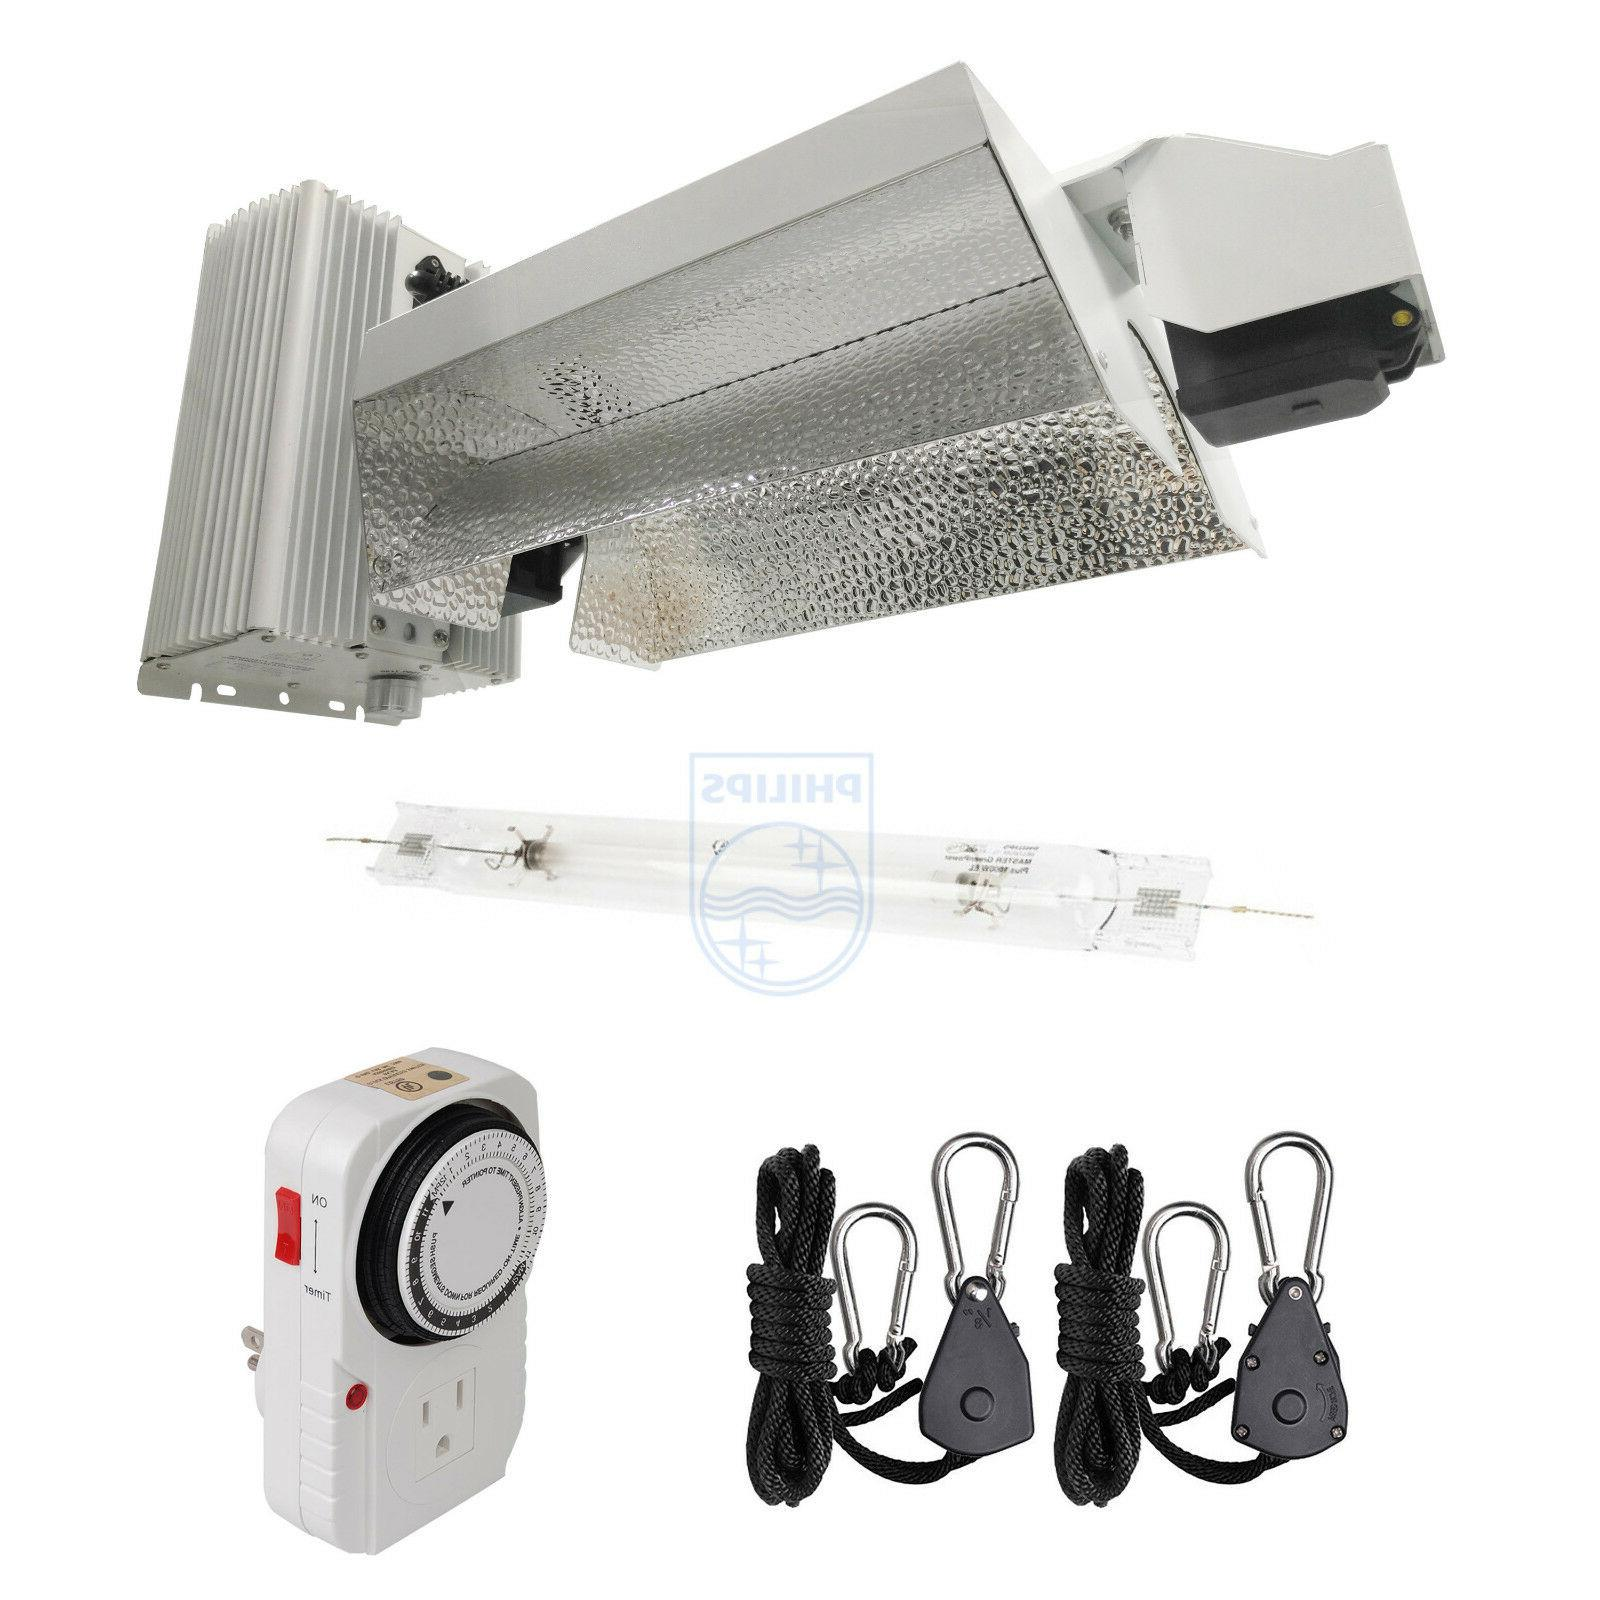 1000w double ended grow light fixture open